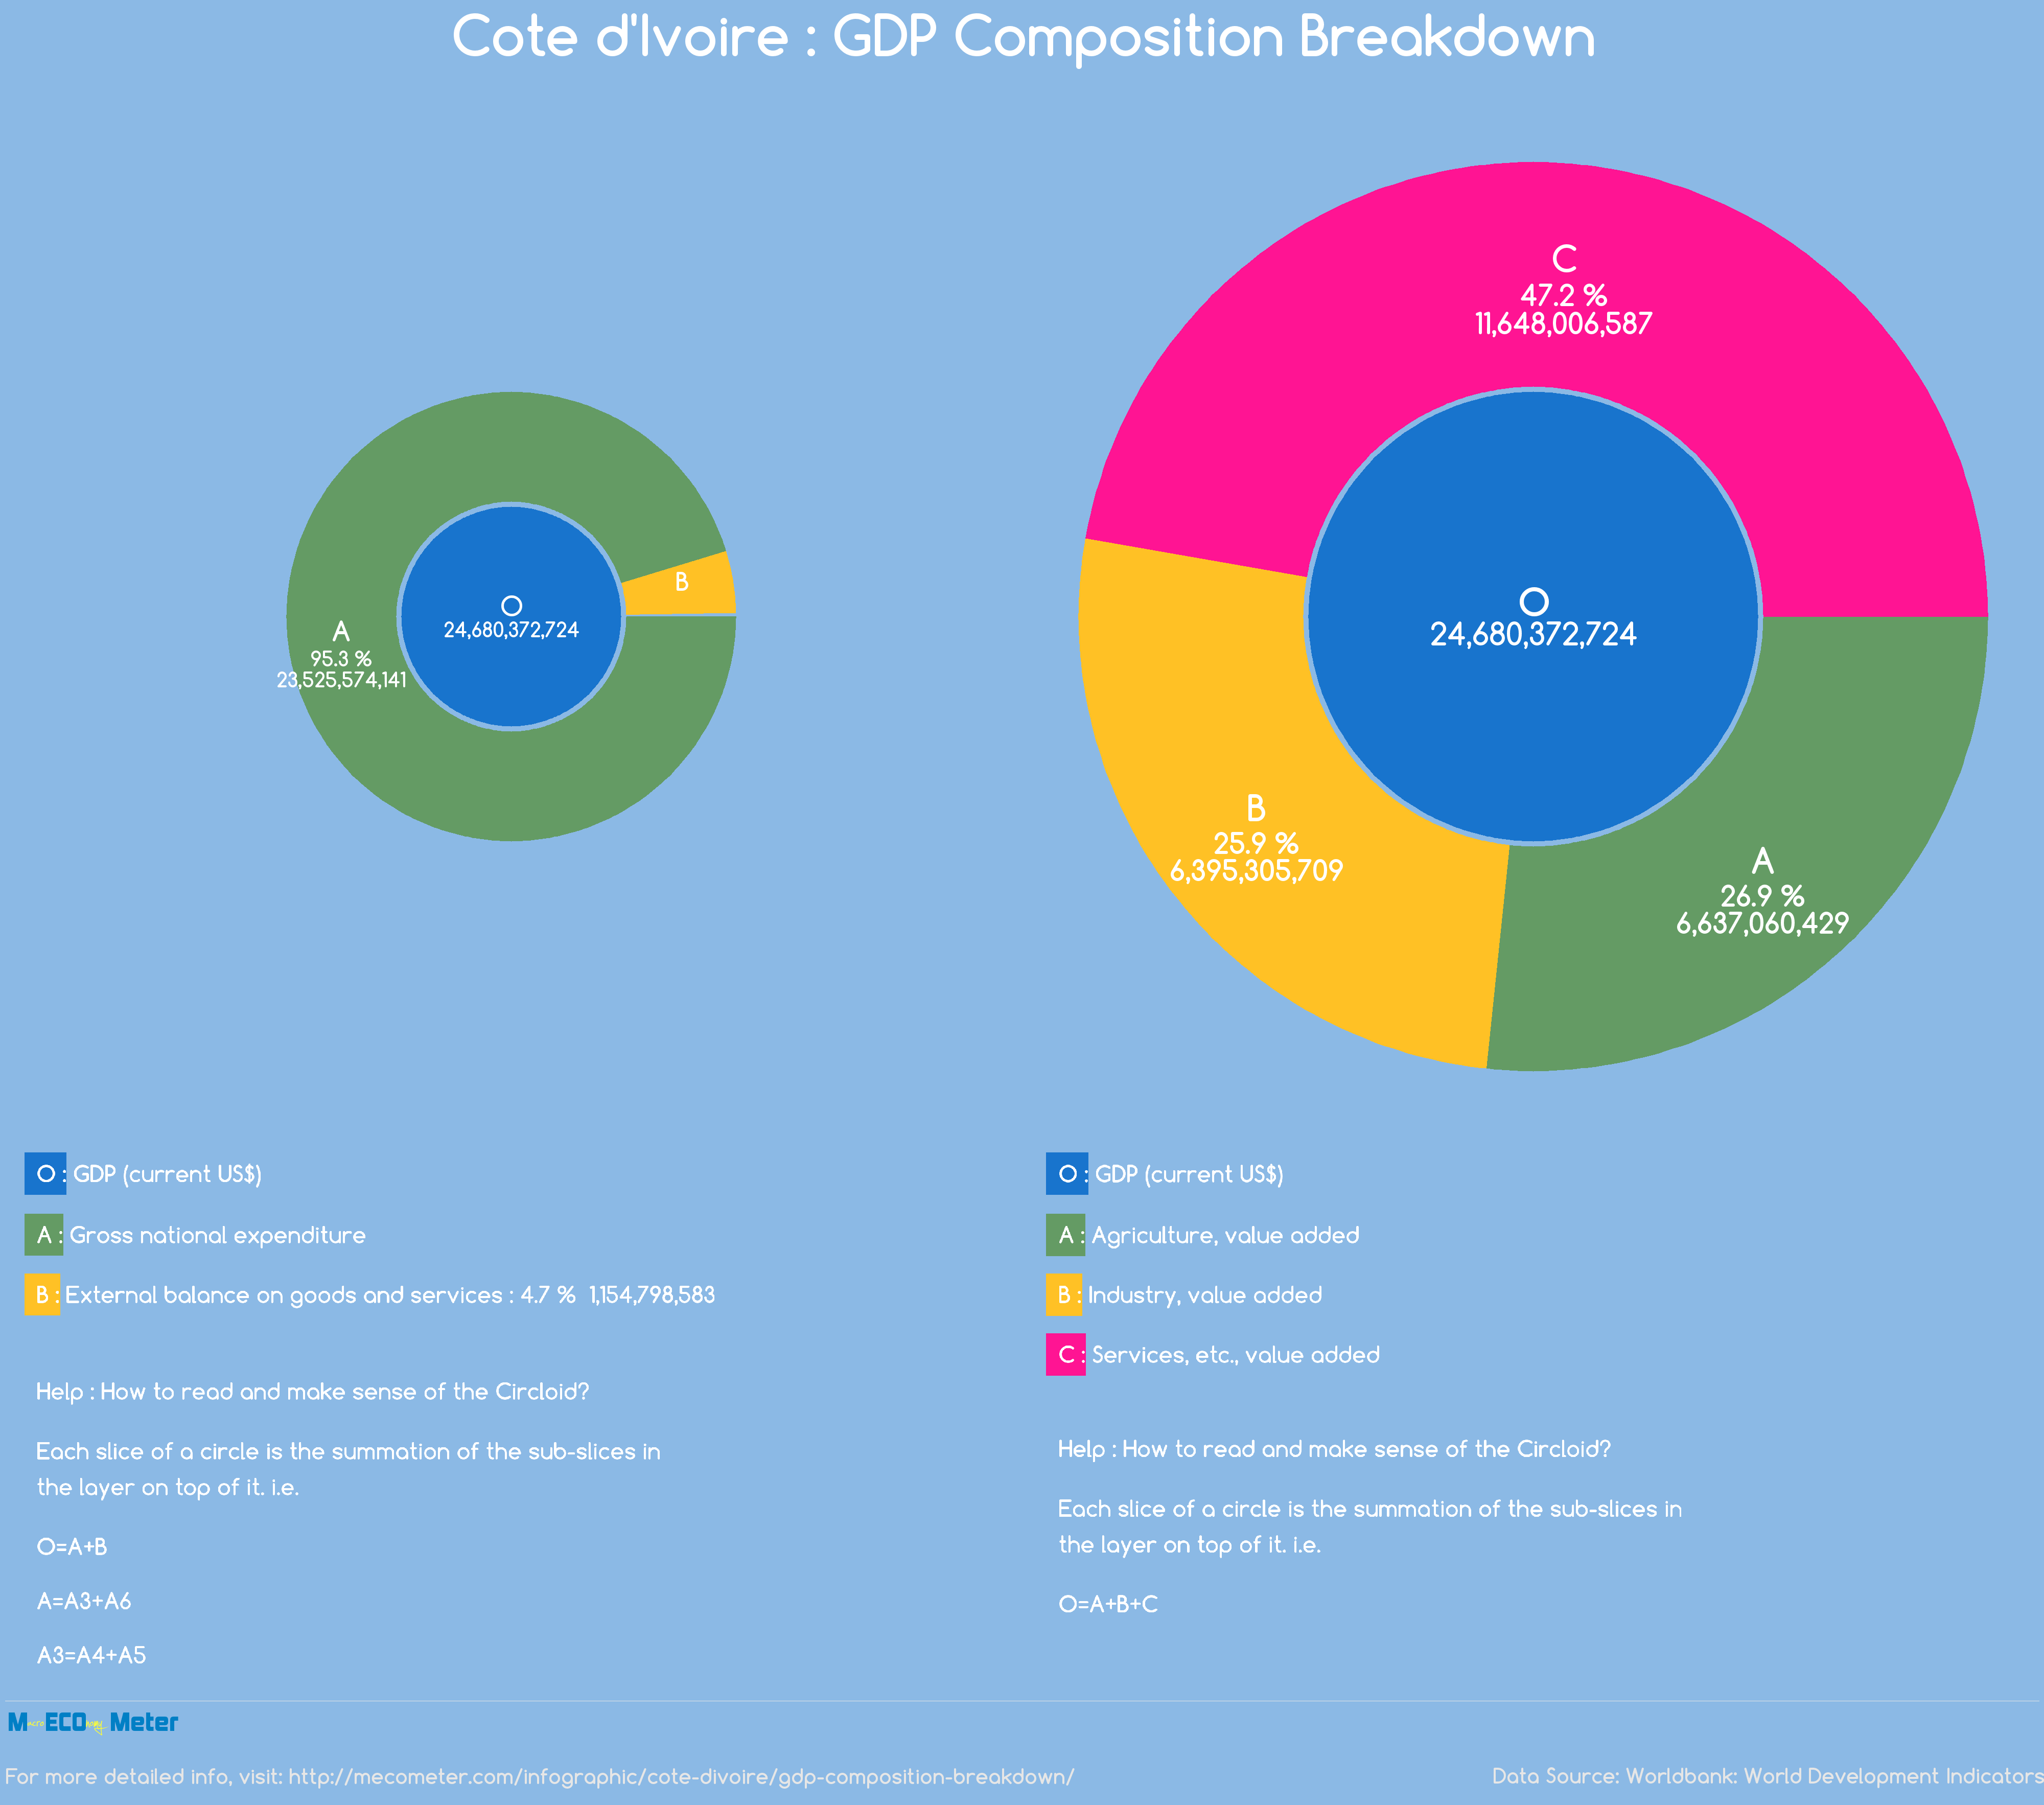 Cote d'Ivoire : GDP Composition Breakdown